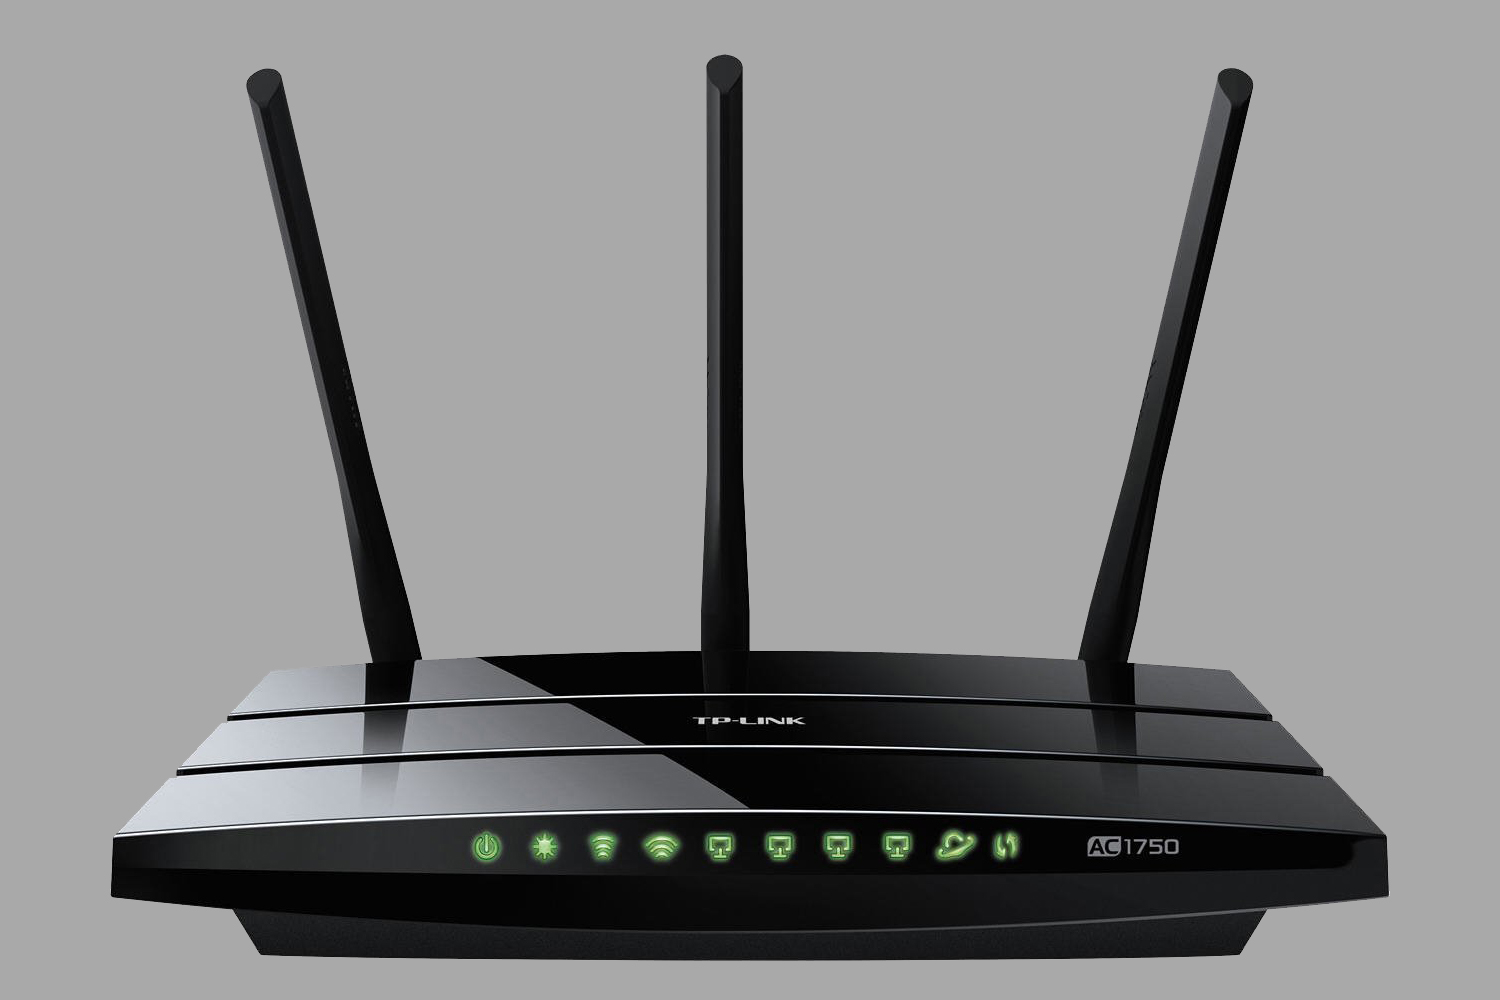 comcast router review with Tp Link Archer C7 Router Deal on 3 likewise Best Wireless Routers additionally cast Xfinity Modem Router also gear Cm1000 Review besides Arris Tm722g Docsis 3 0 Telephony Cable Modem Telephone.